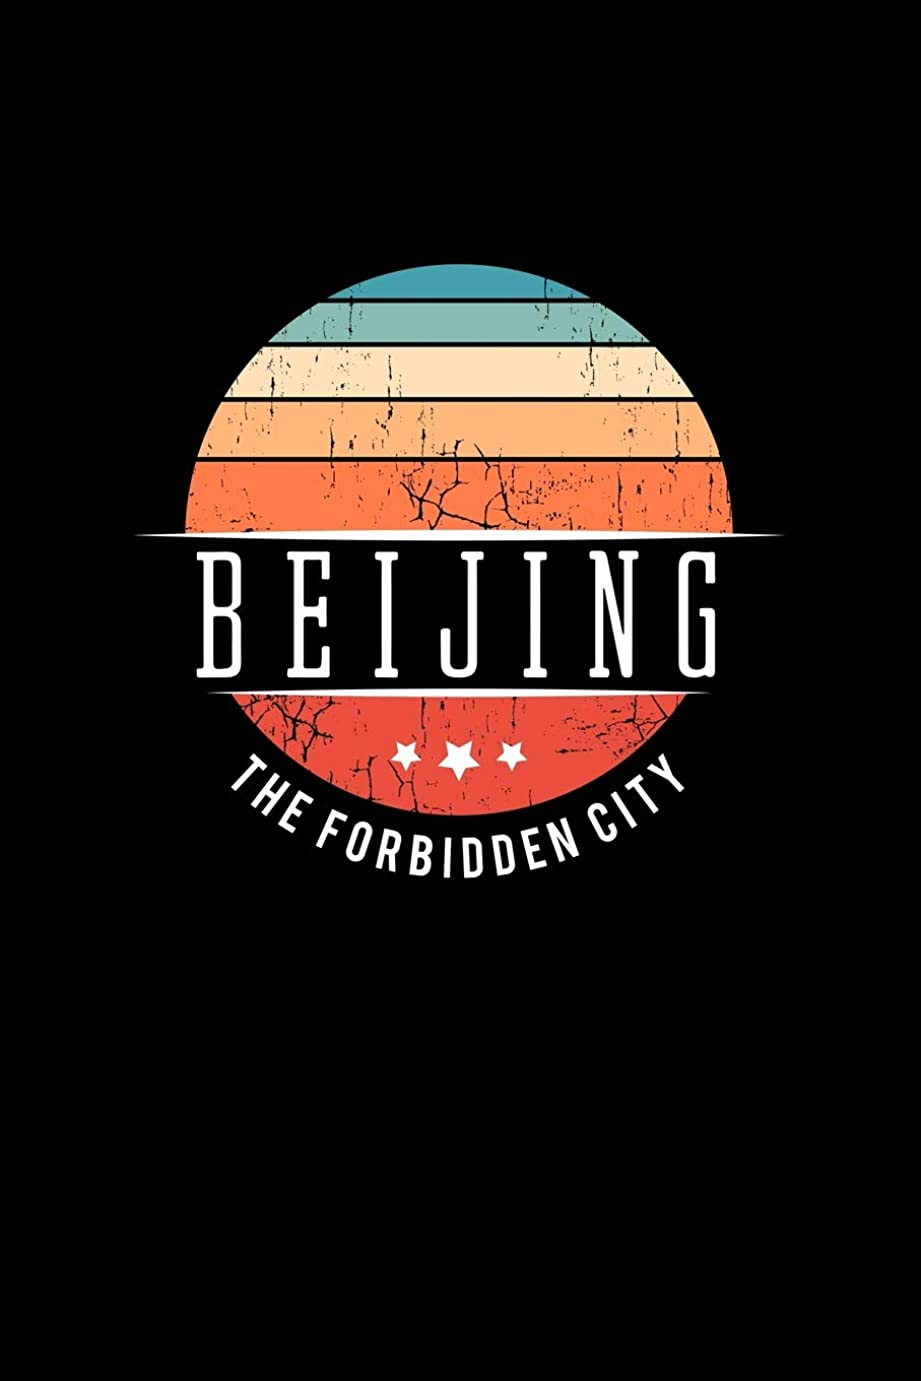 マージン長老お嬢Beijing The Forbidden City: Vintage City Trip Souvenir Blank Journal Notebook